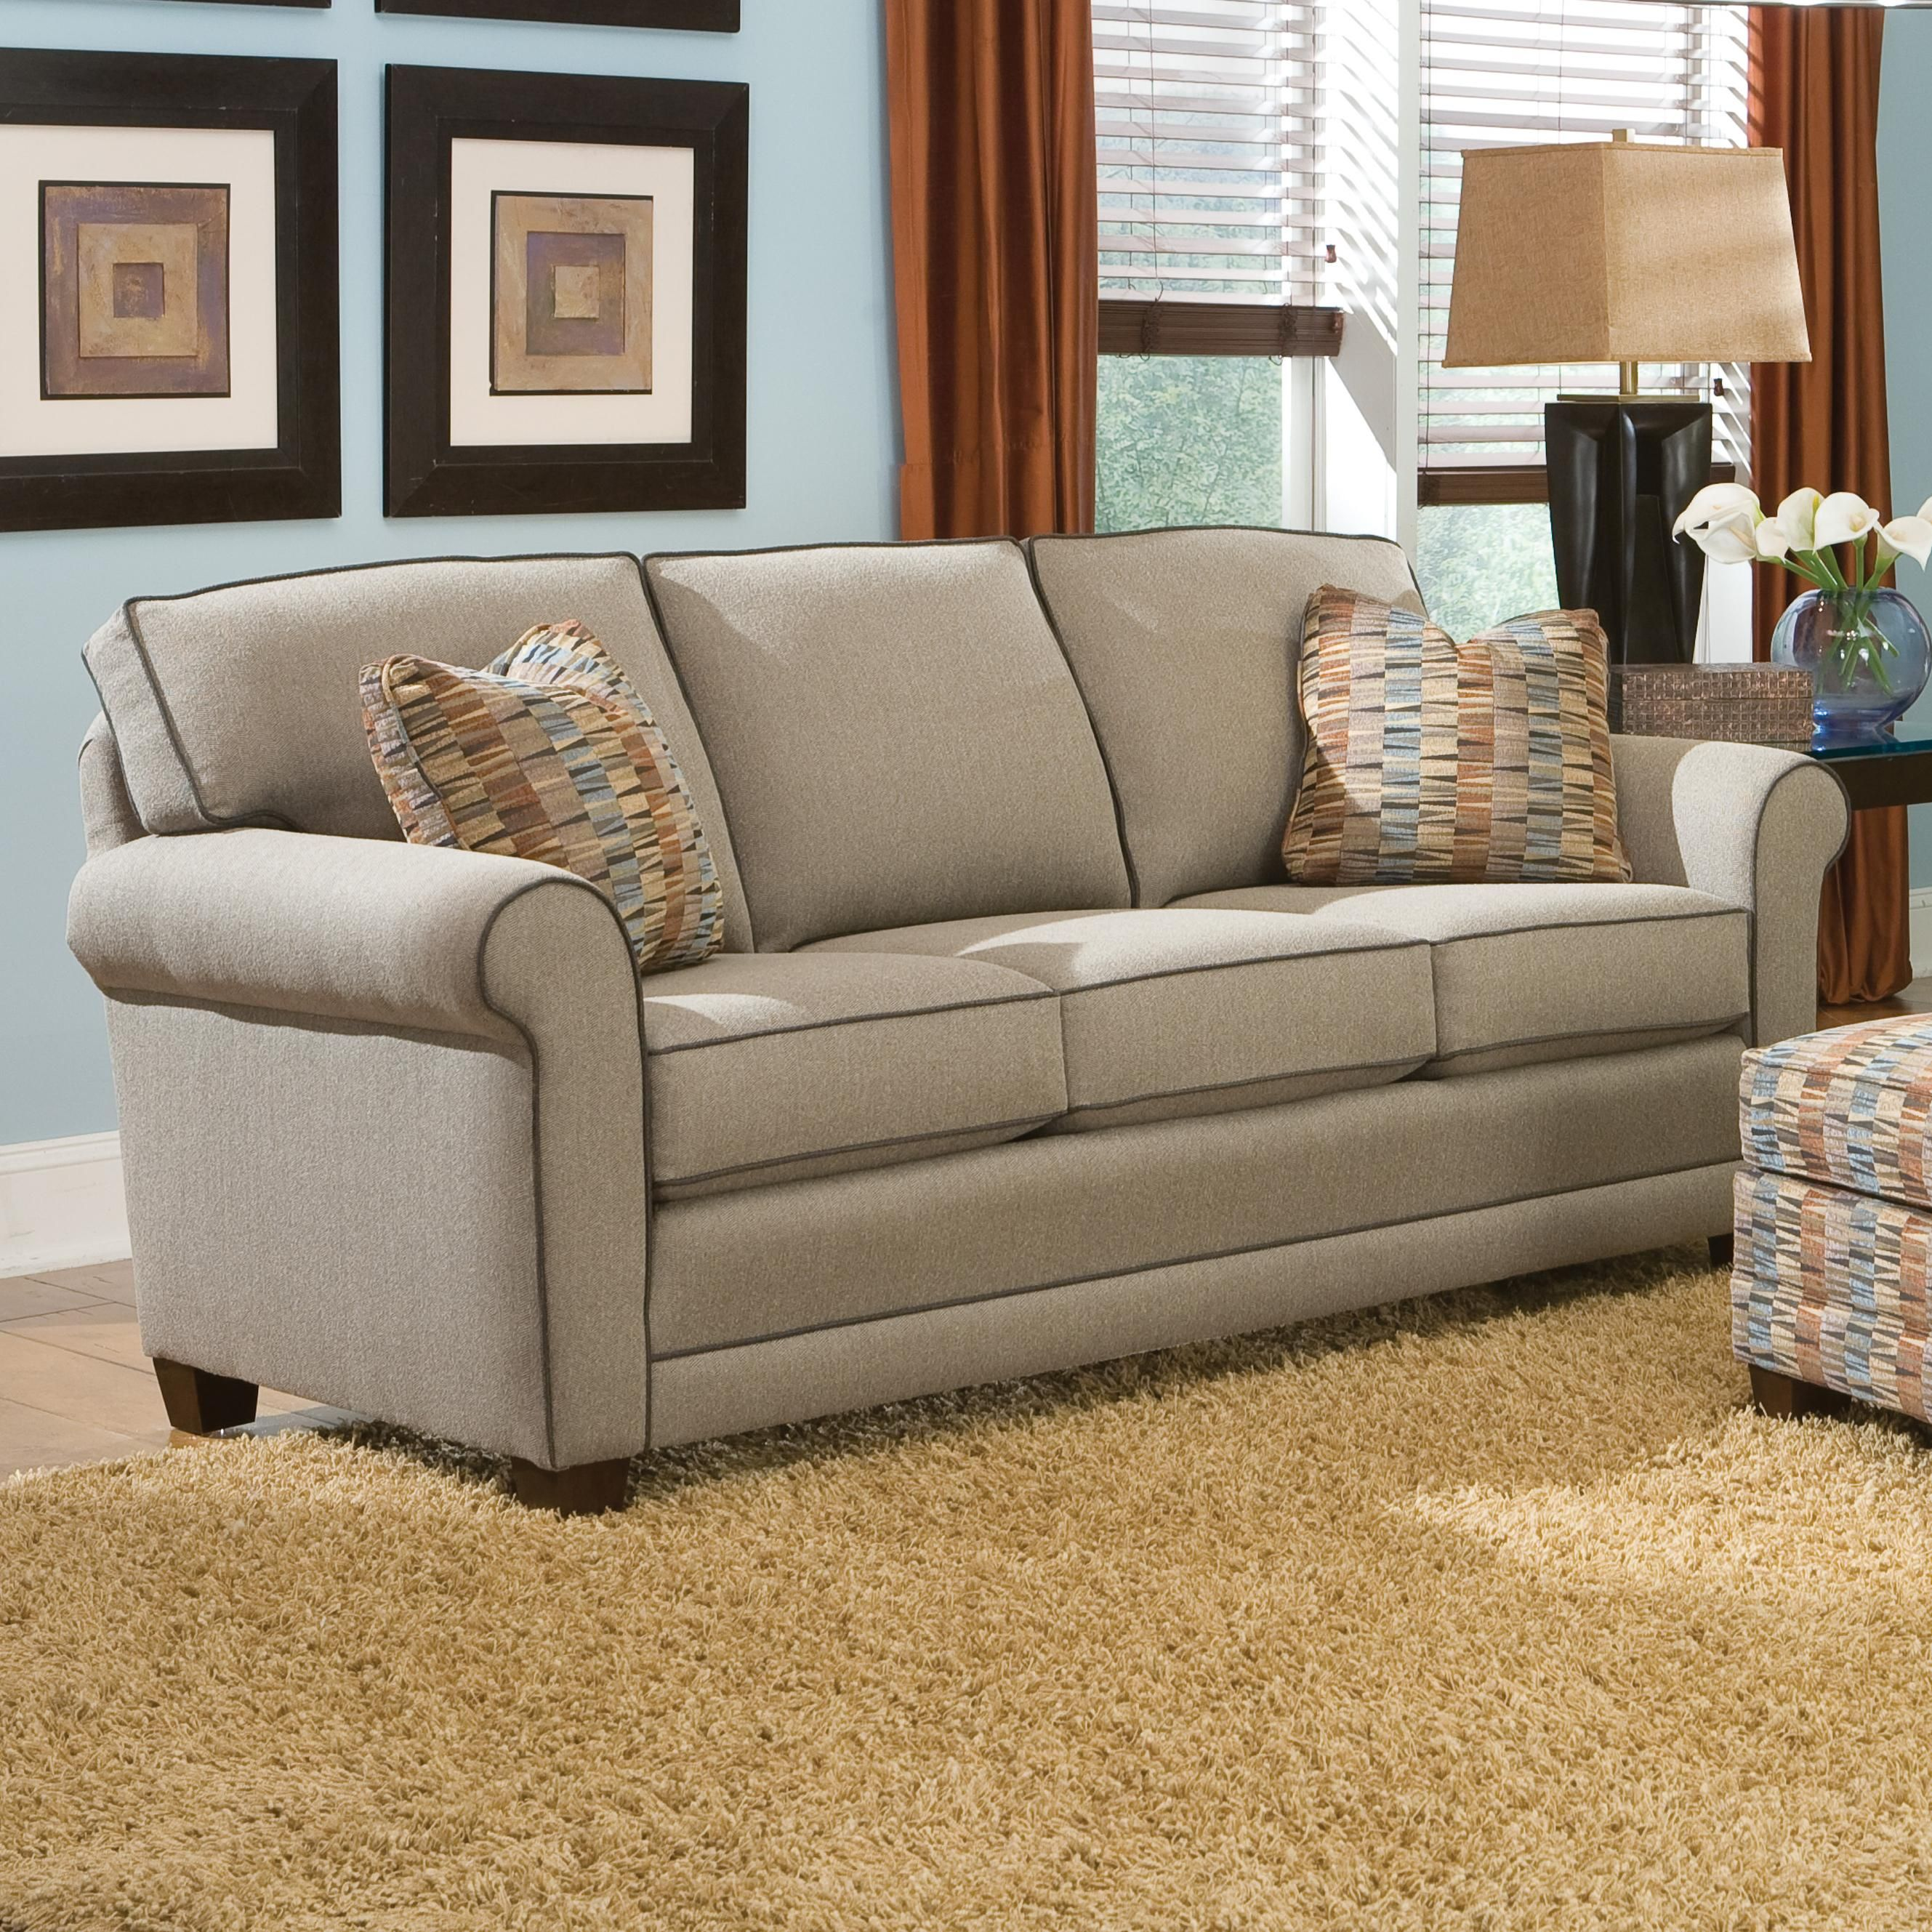 Shop For The Smith Brothers 366 Stationary Sofa At Interiors Home  Furnishings   Your Mankato Furniture U0026 Mattress Store